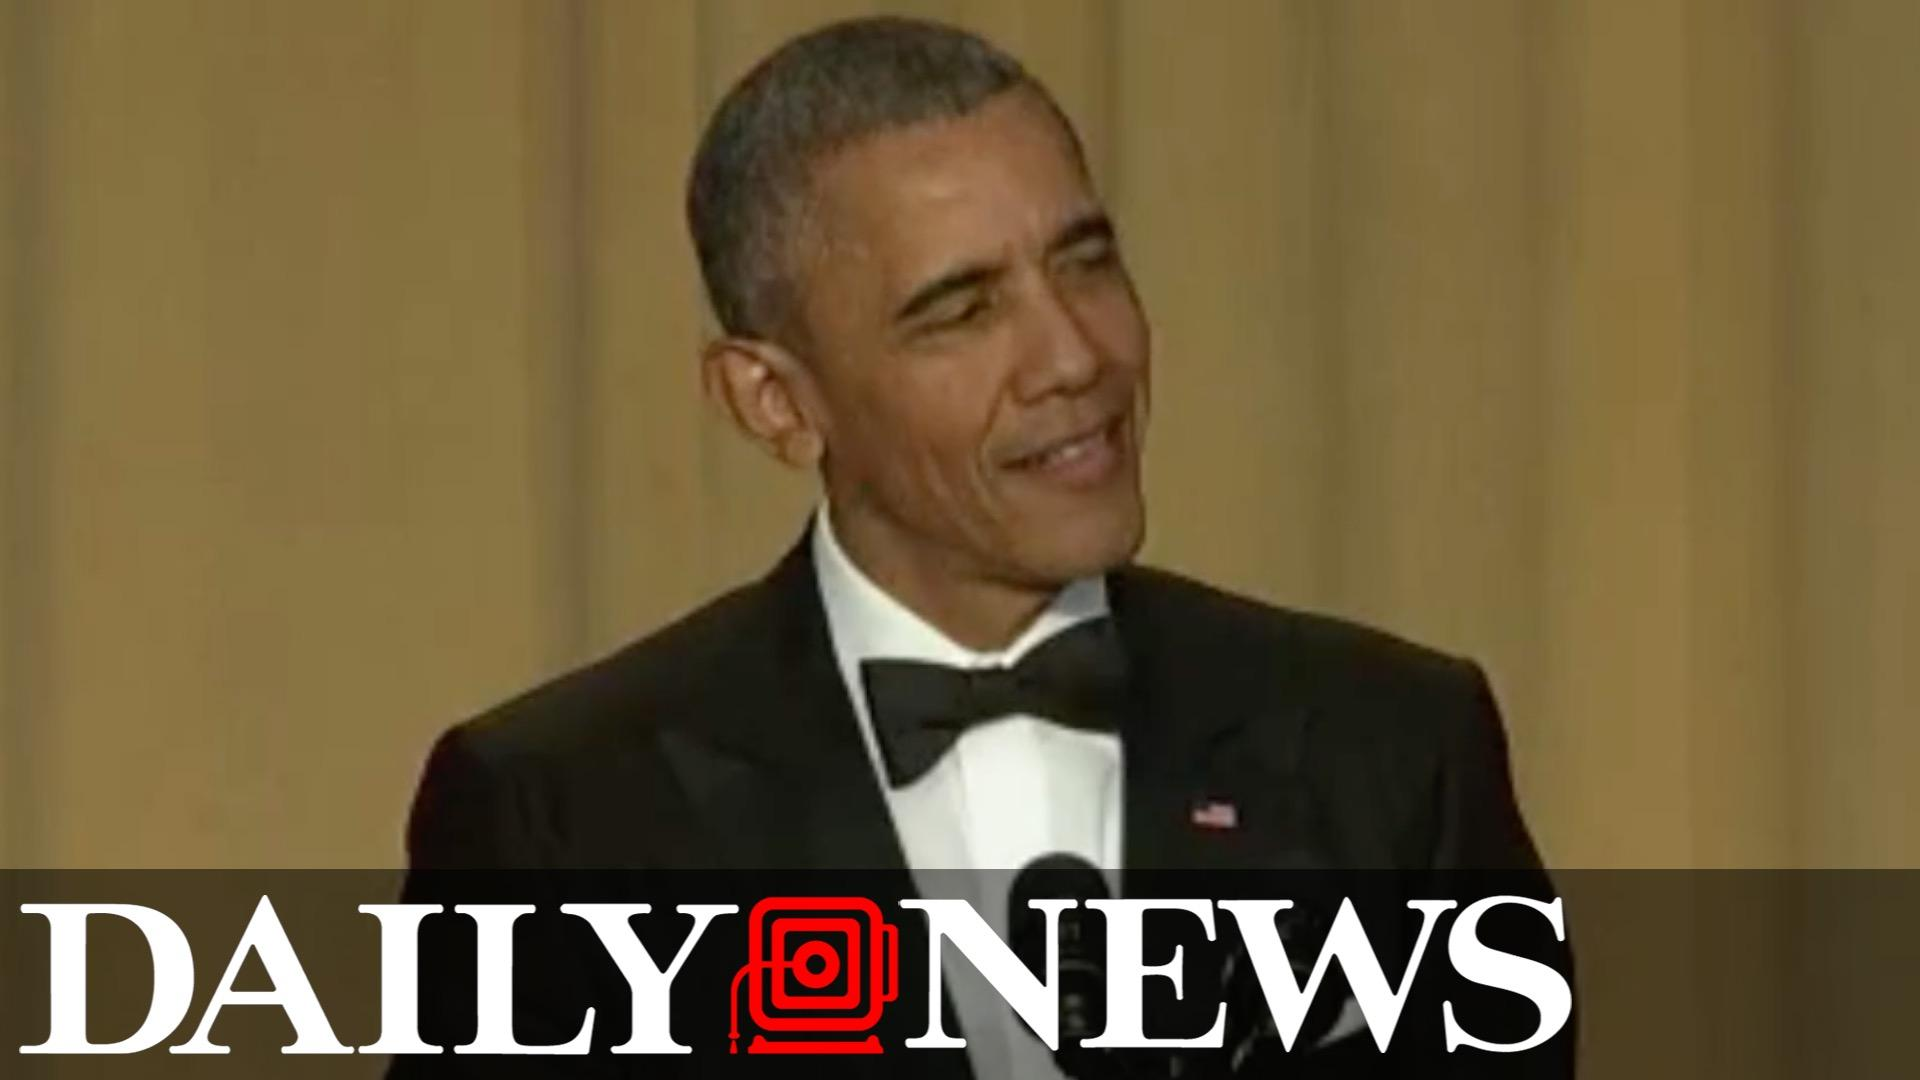 Obama highlights from White House Correspondents Dinner